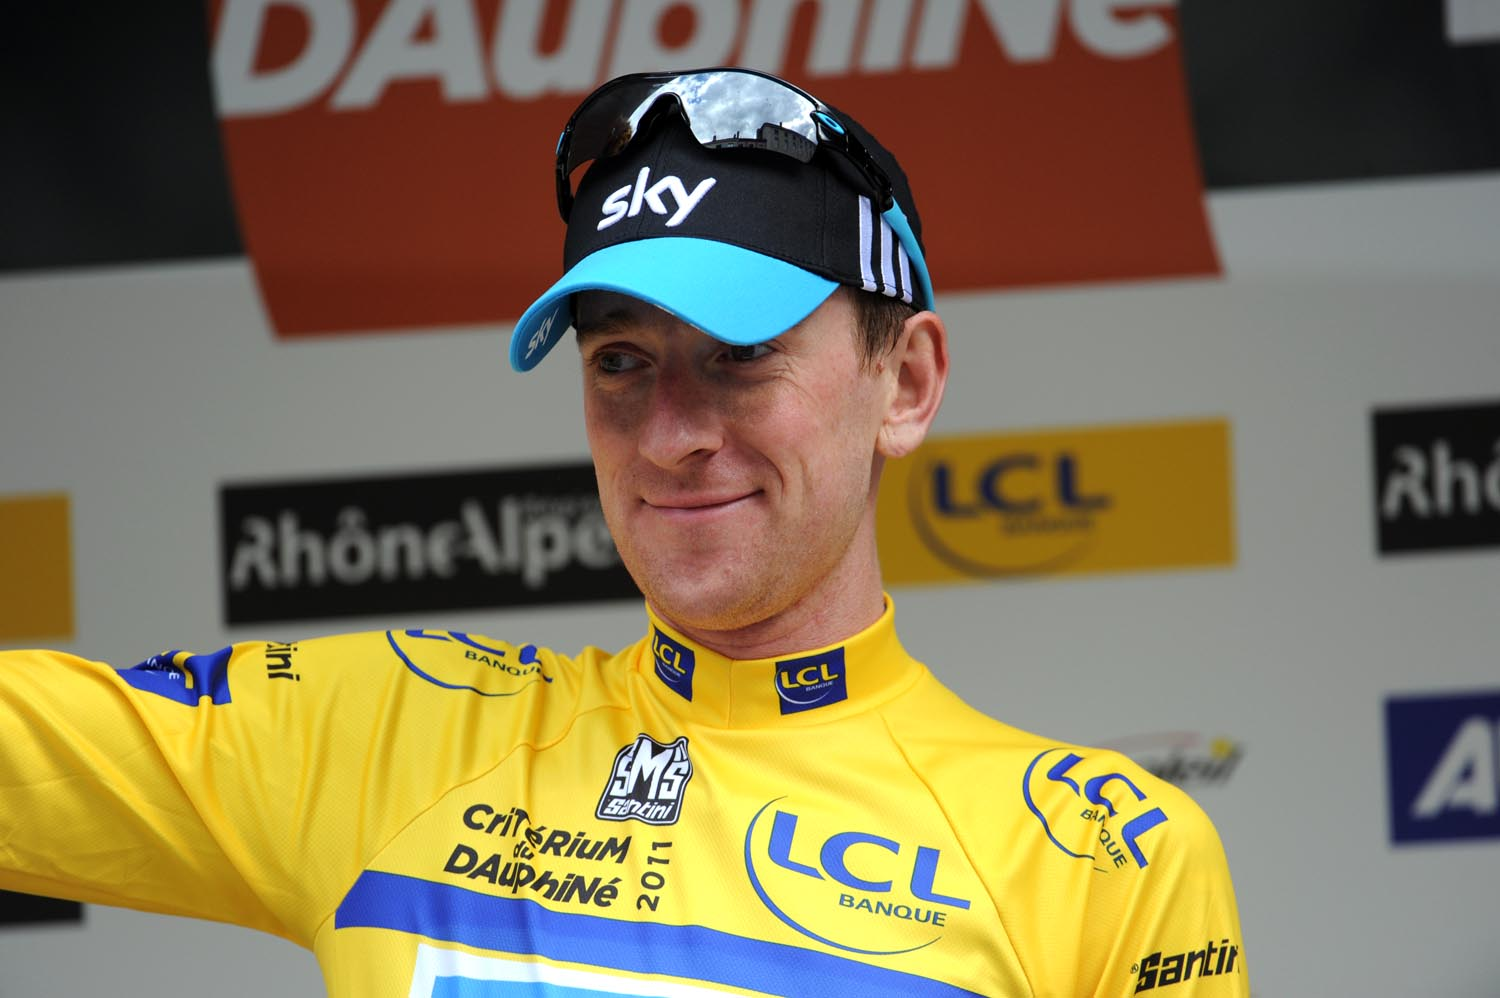 Bradley Wiggins continues in race lead, Criterium du Dauphine 2011, stage four